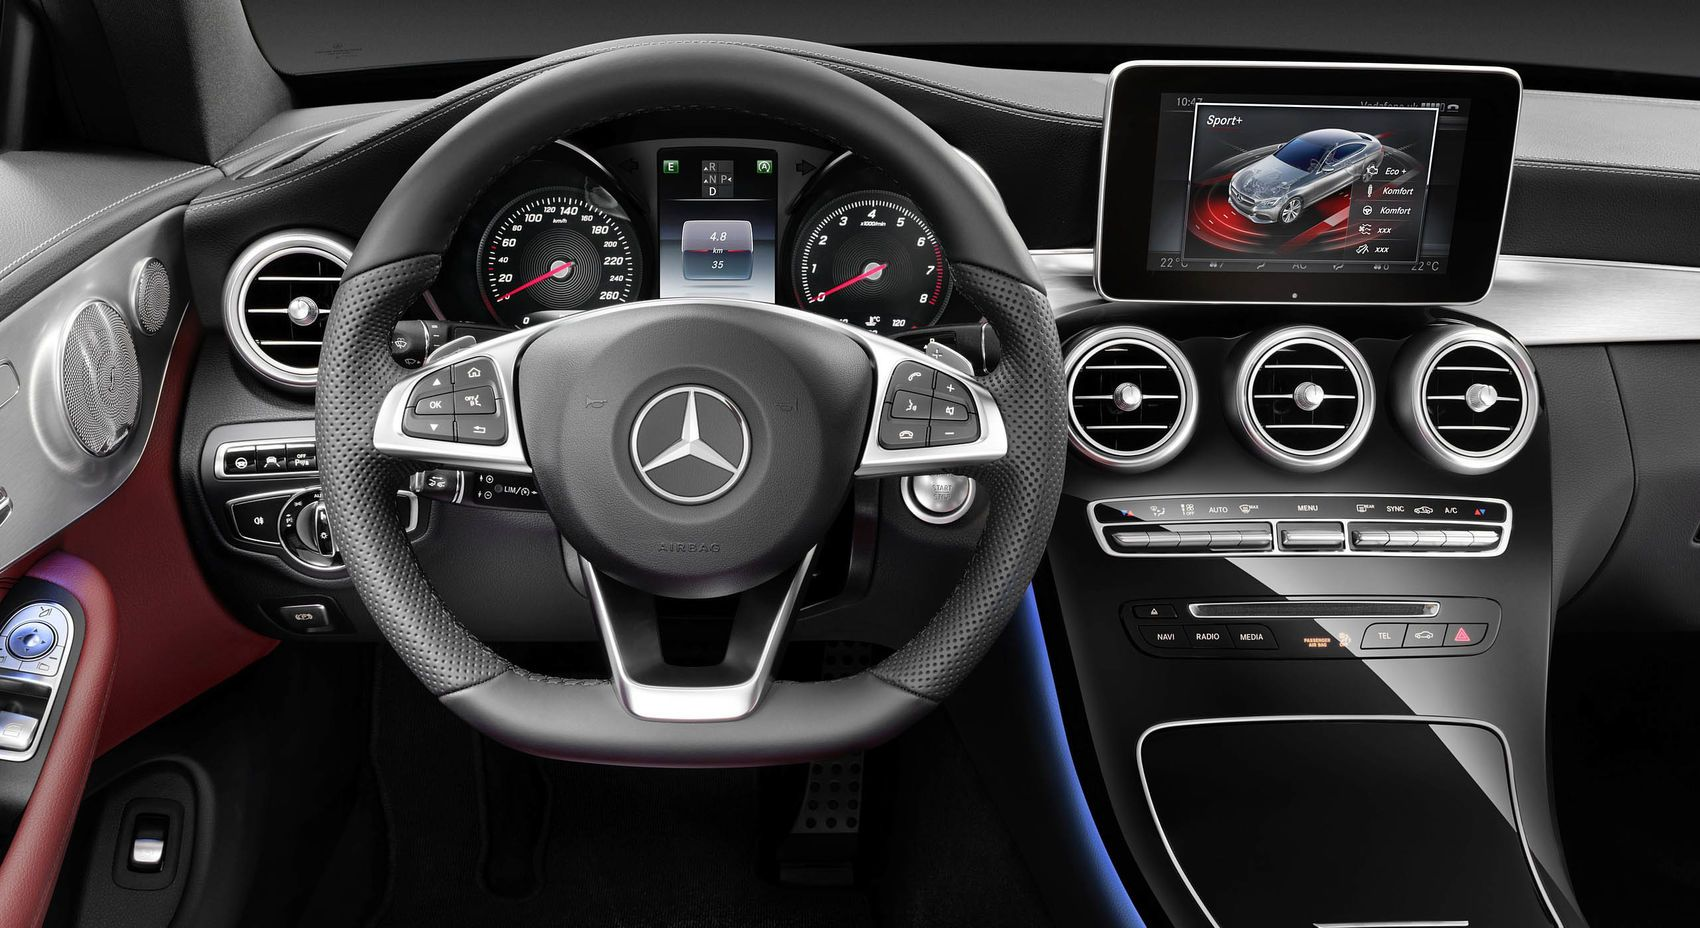 2017 Mercedes Benz C Class Coupe C300 Interior Cockpit Images